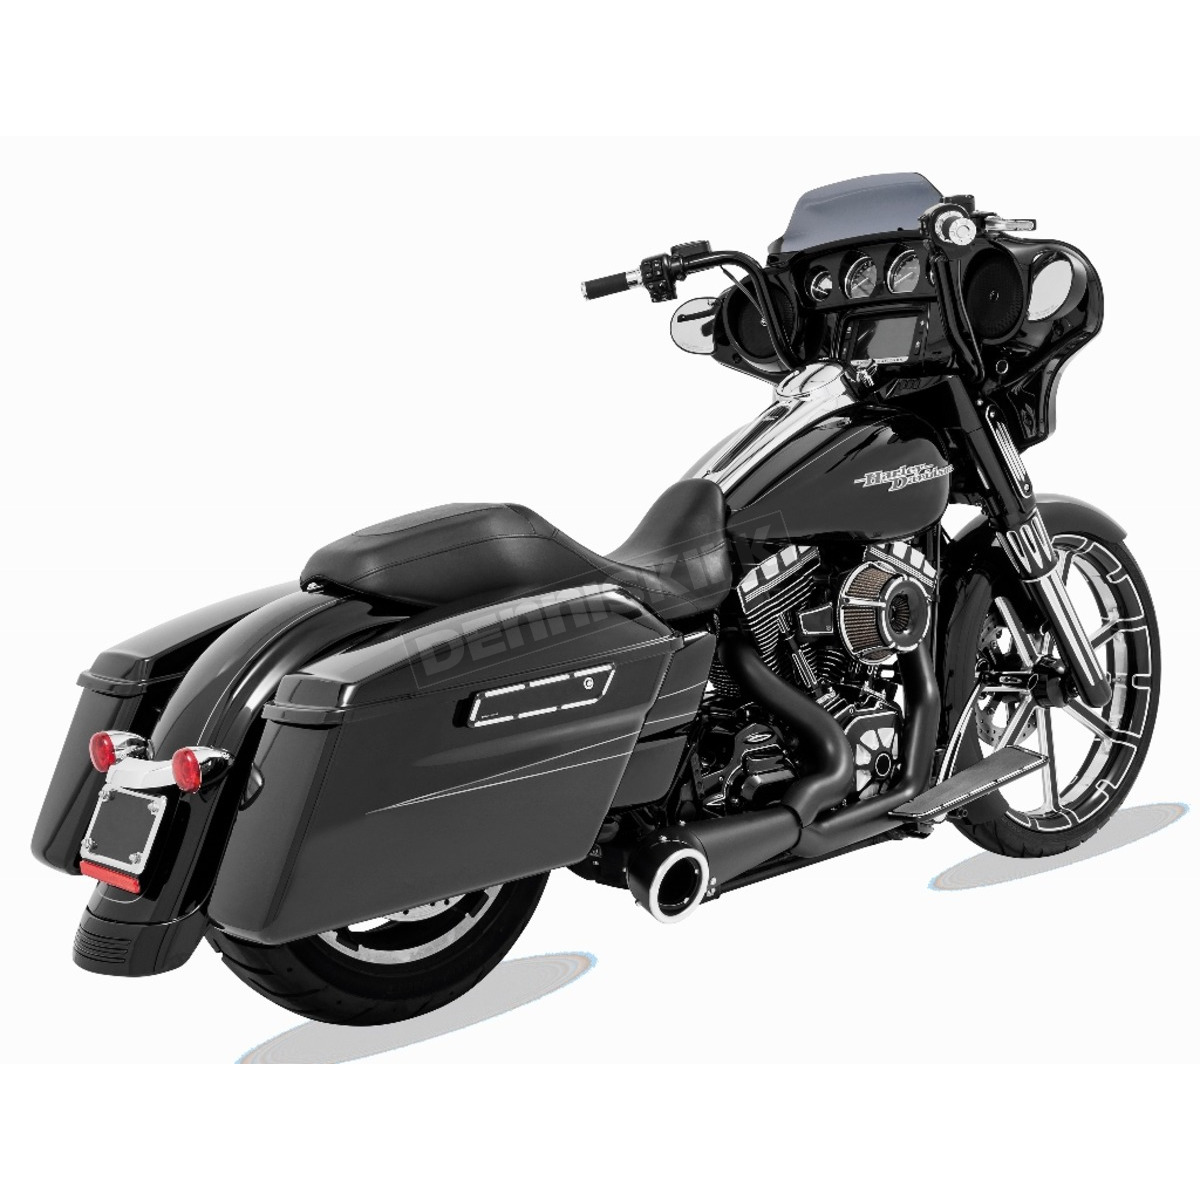 black 2 into 1 turnout exhaust system hd00838